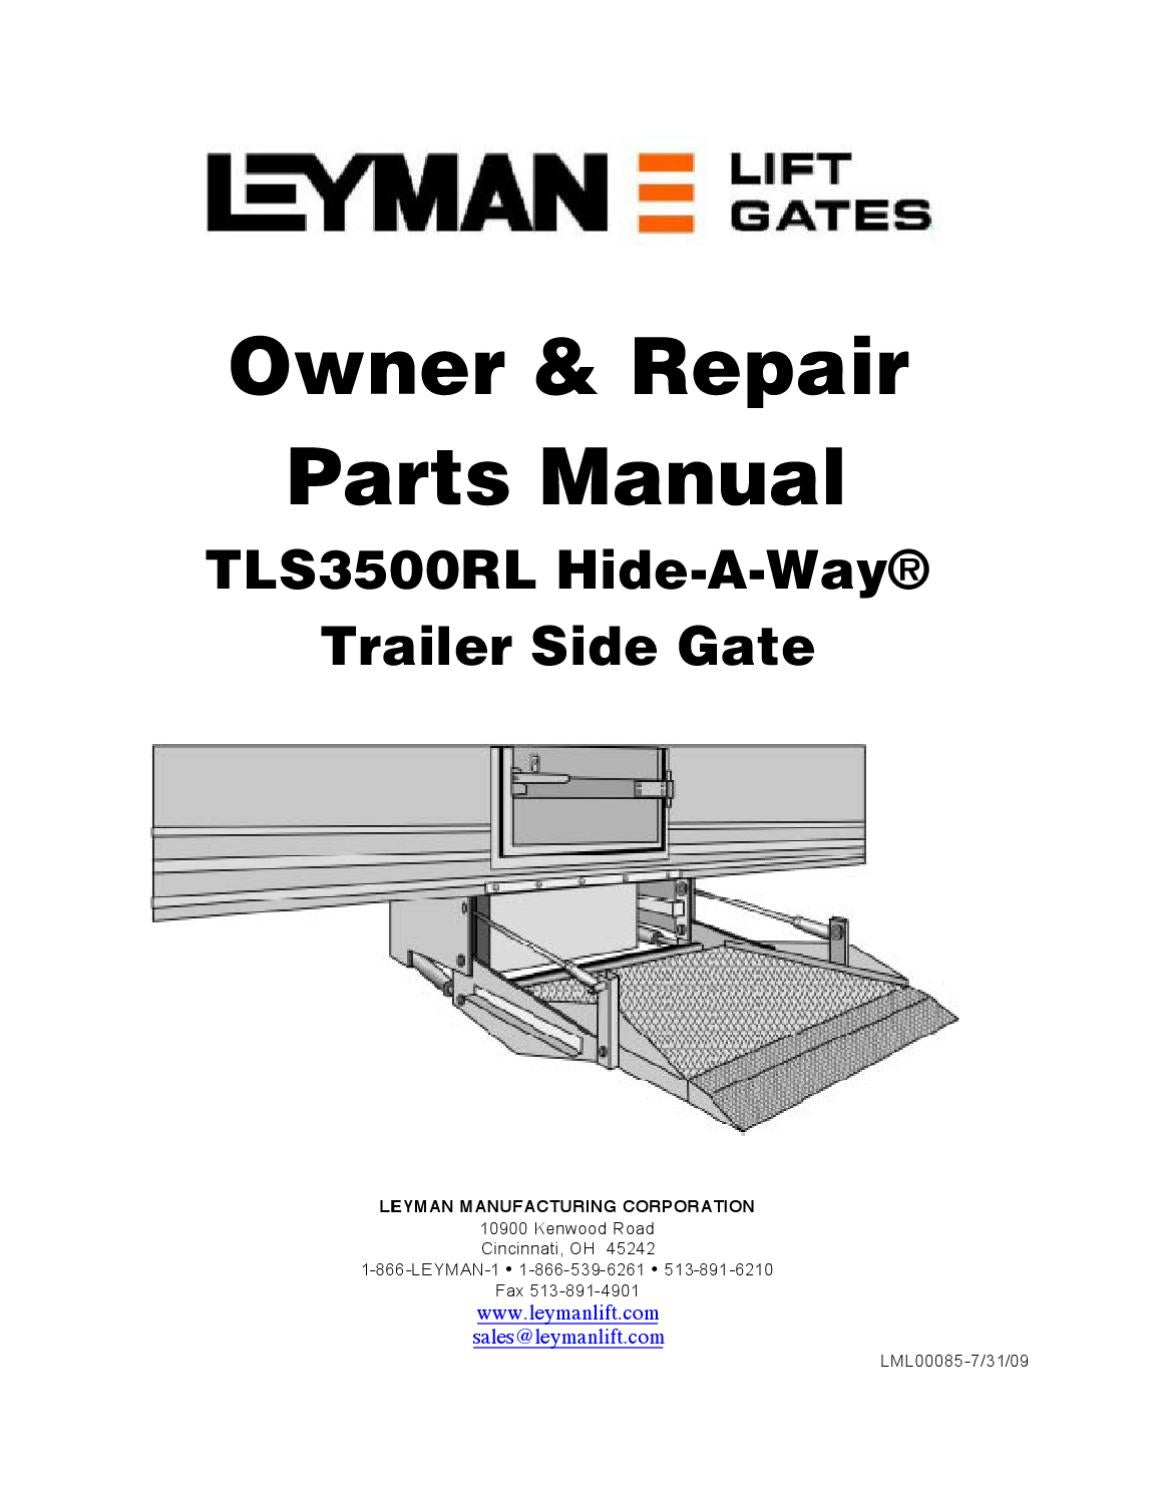 Leyman Liftgate Wiring Diagram 30 Images Maxon Bmr Page 1 Tls 3500rl Series By The Parts Co Issuu